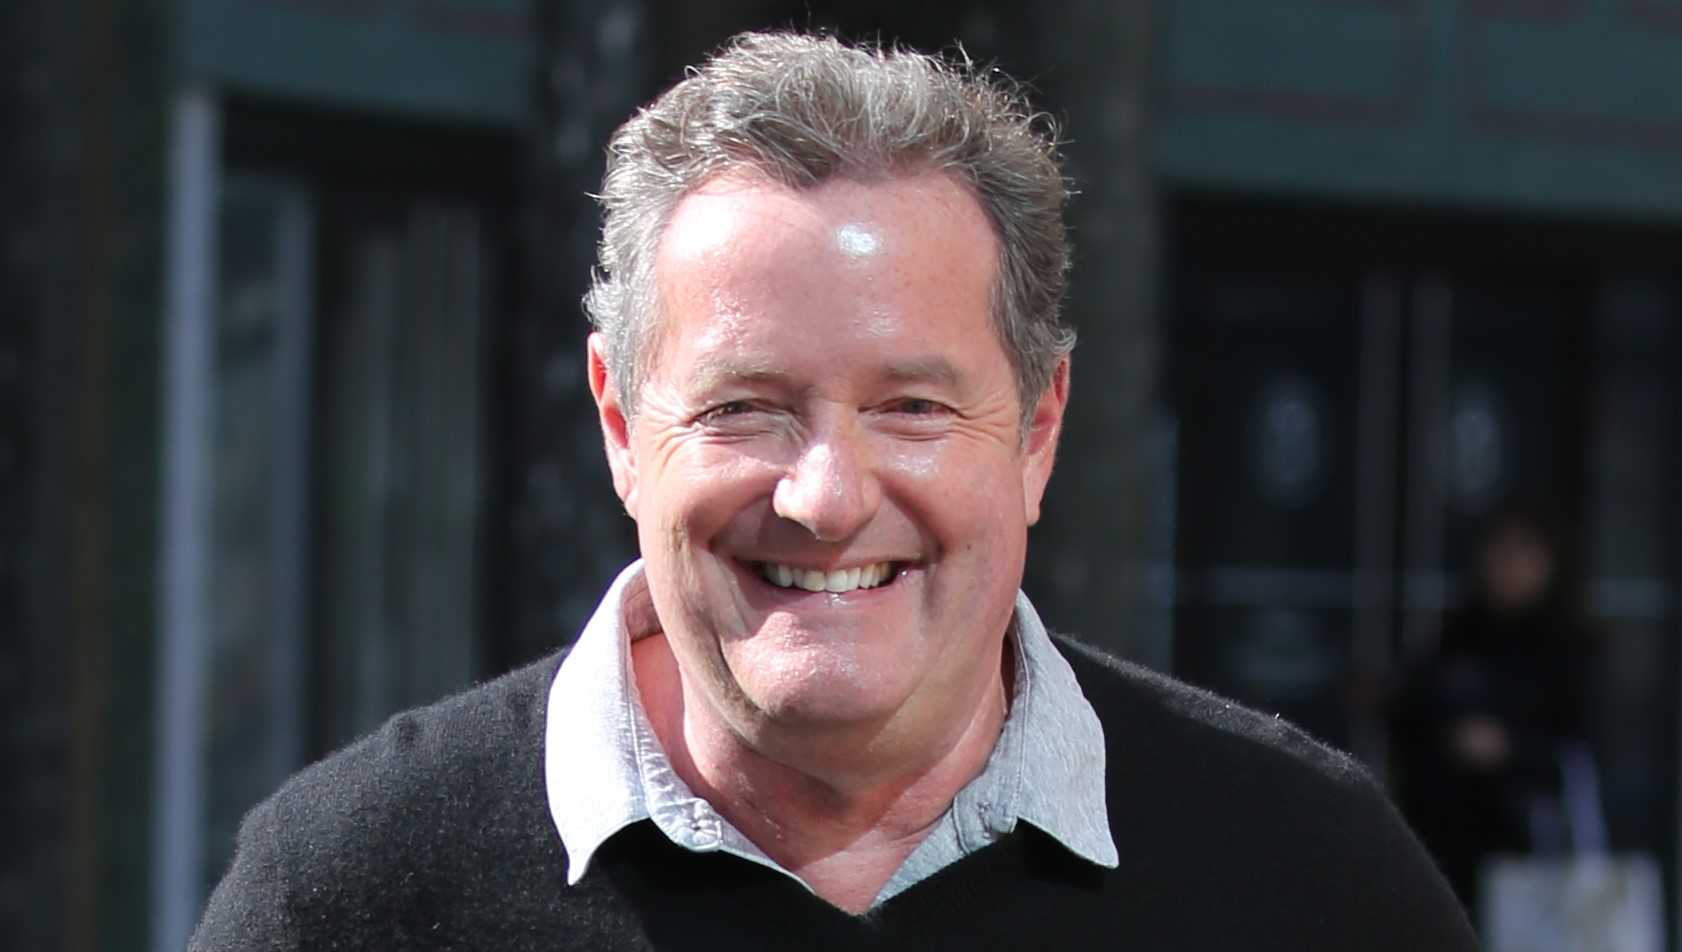 Piers Morgan shares sweet photos of son to mark his birthday